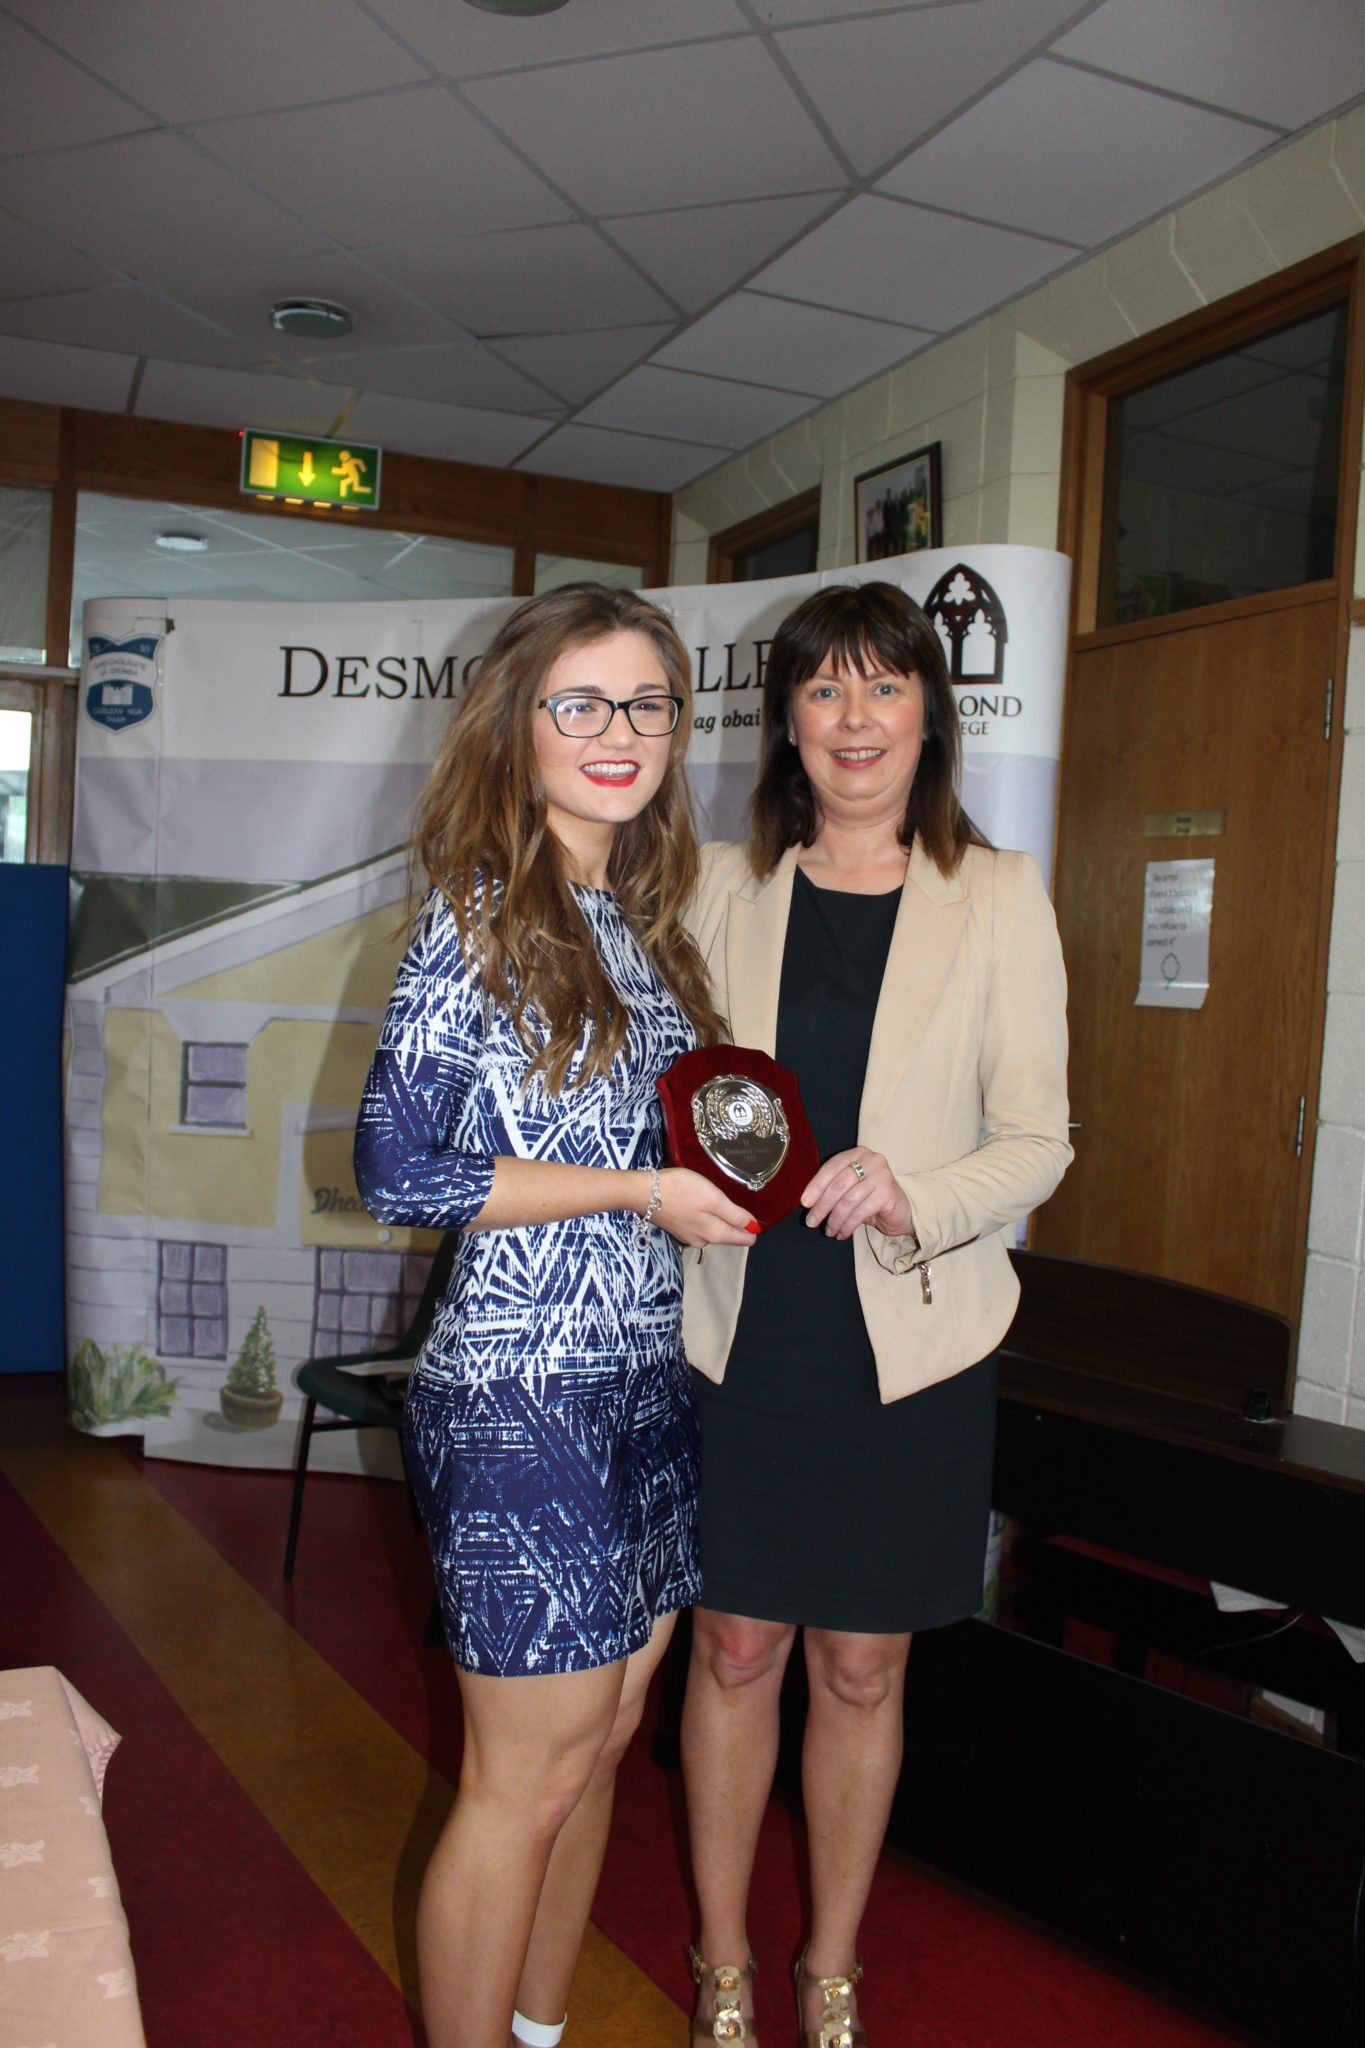 Desmond College TY Graduation 2015: Community Leader Award: Claire Mortell and Ms Cregan